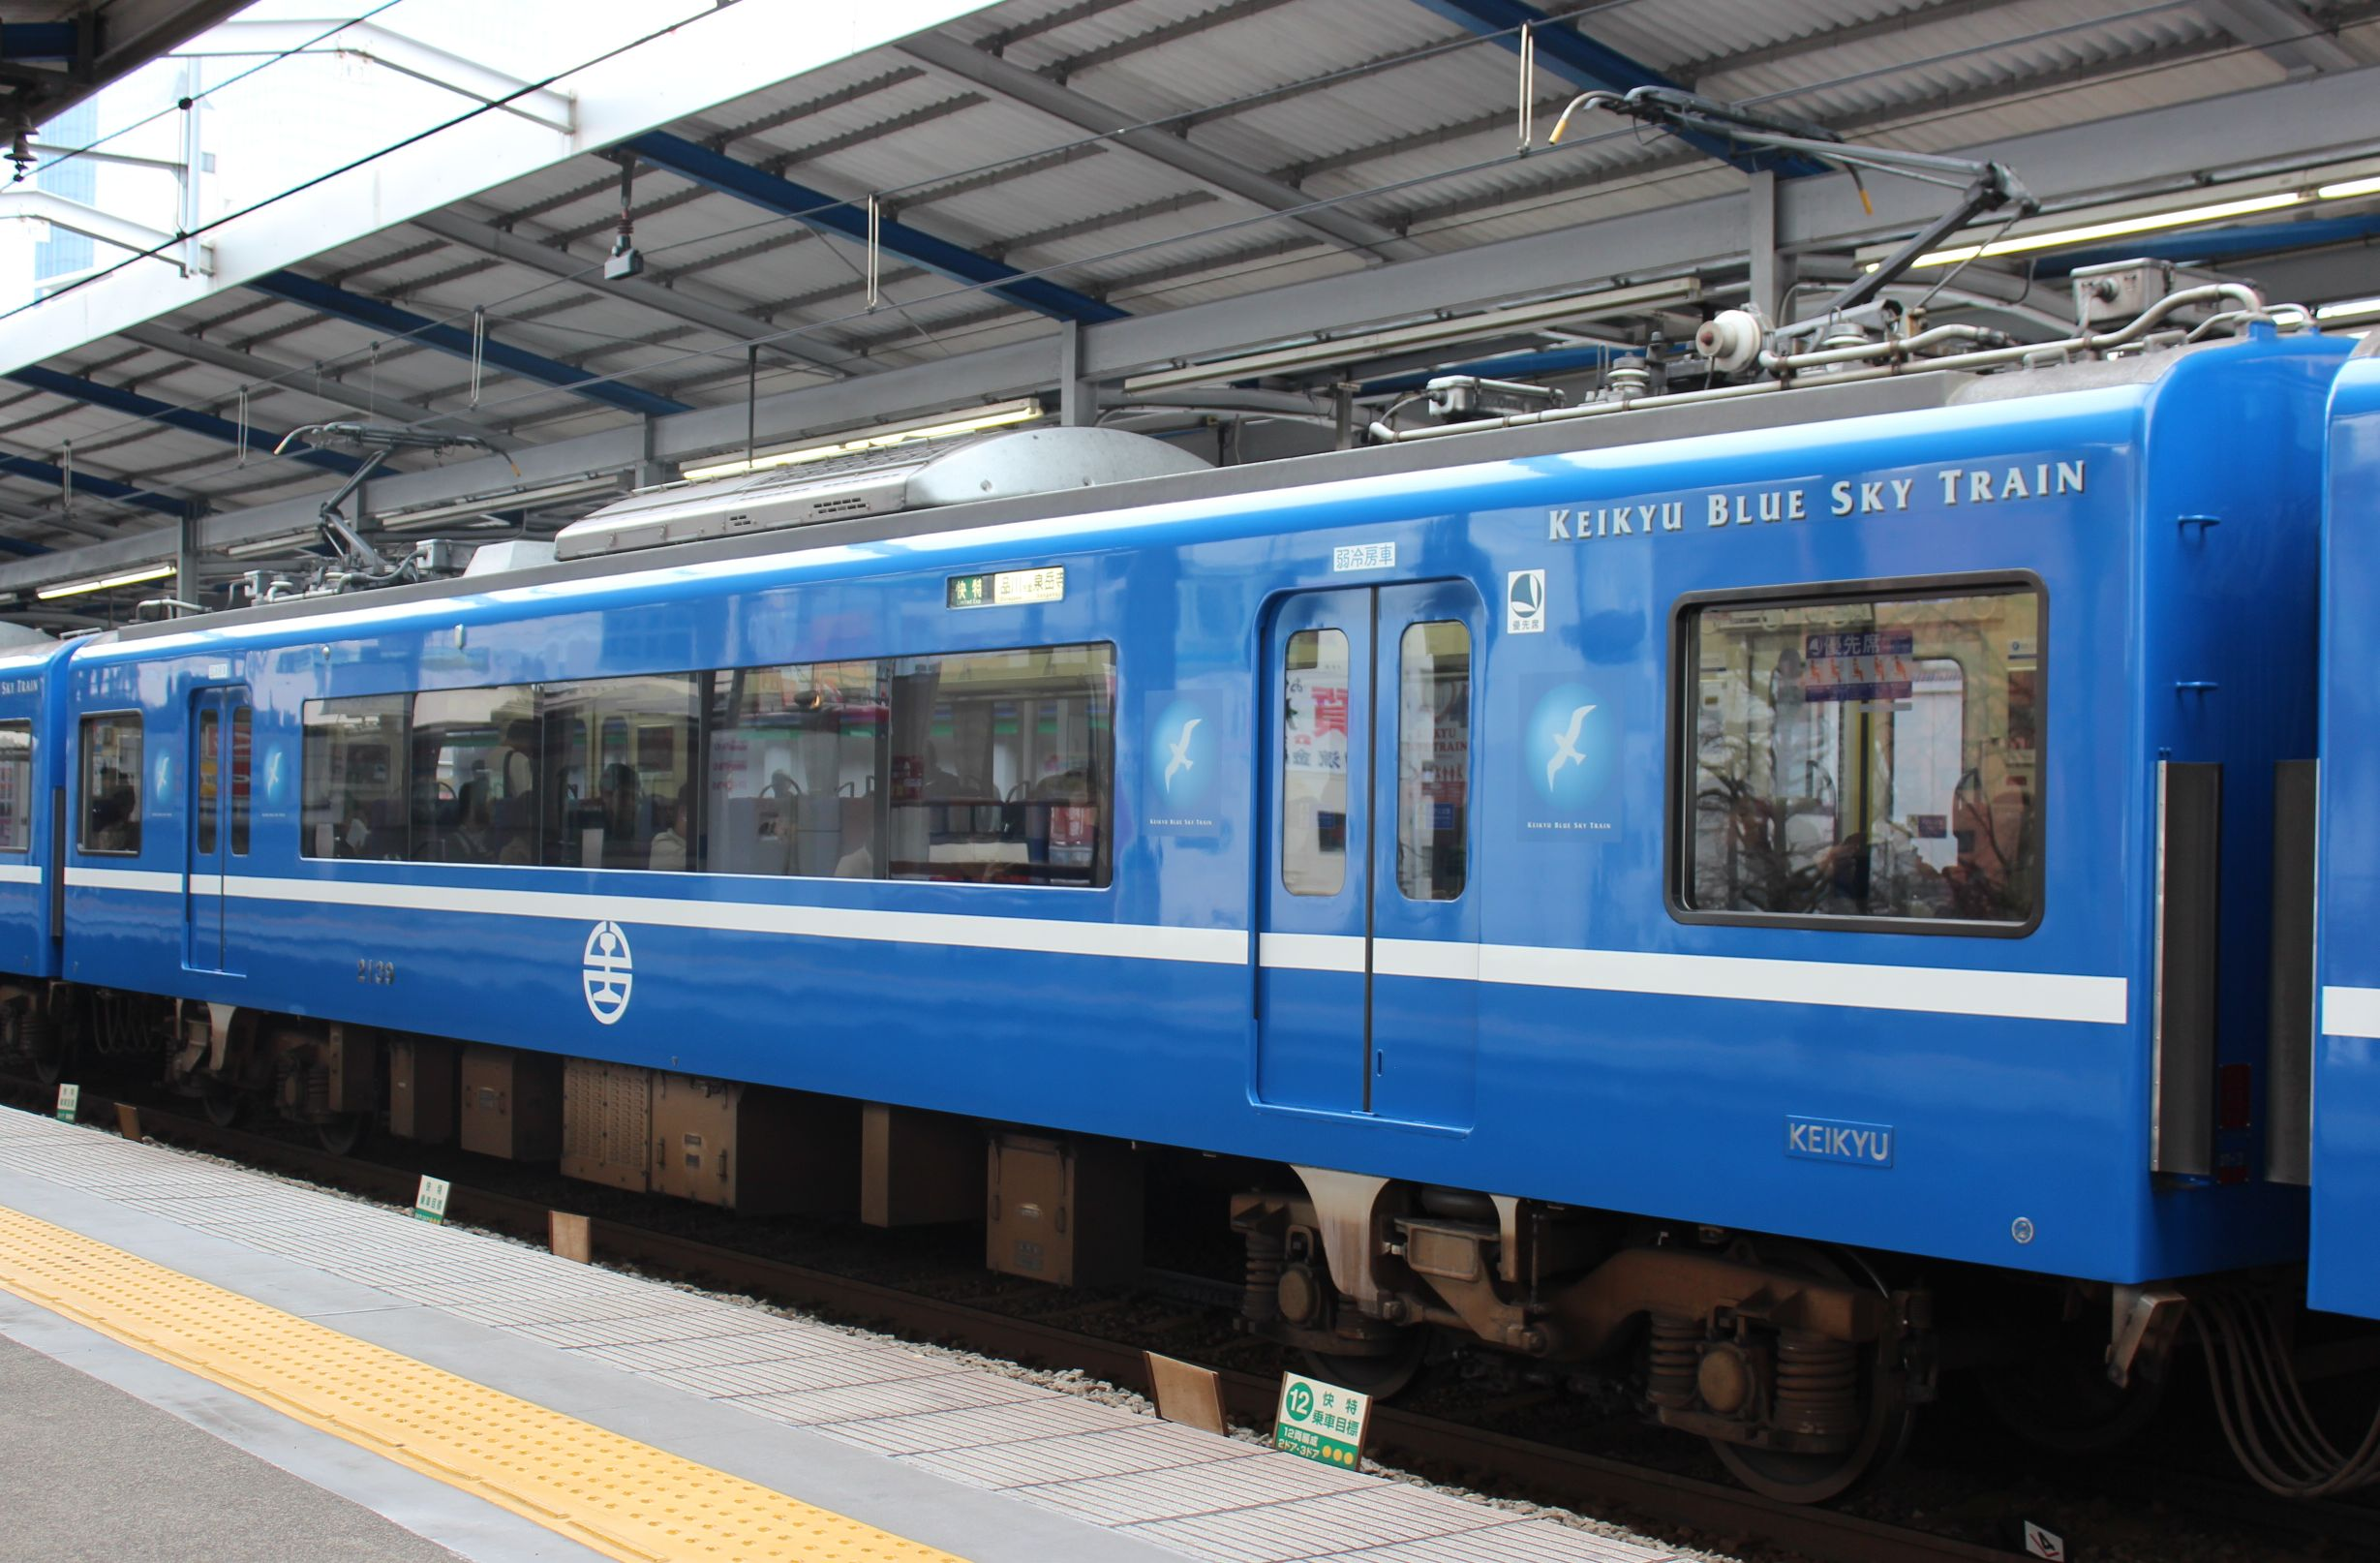 File:Keikyu 2139 BLUE SKY TRAIN TRA local 20160306.jpg